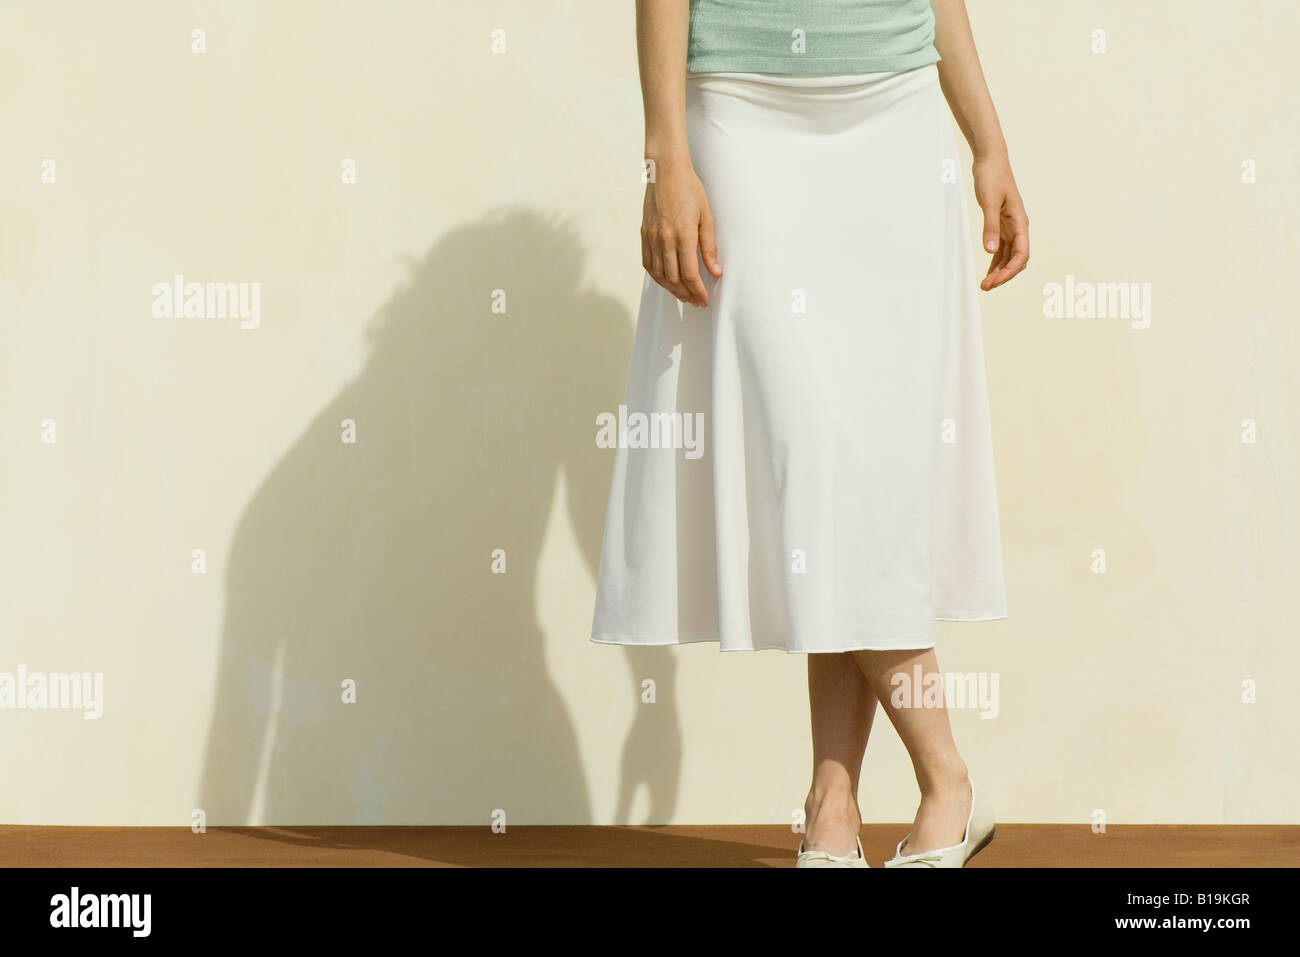 Woman wearing skirt, legs crossed at ankle, cropped view - Stock Image